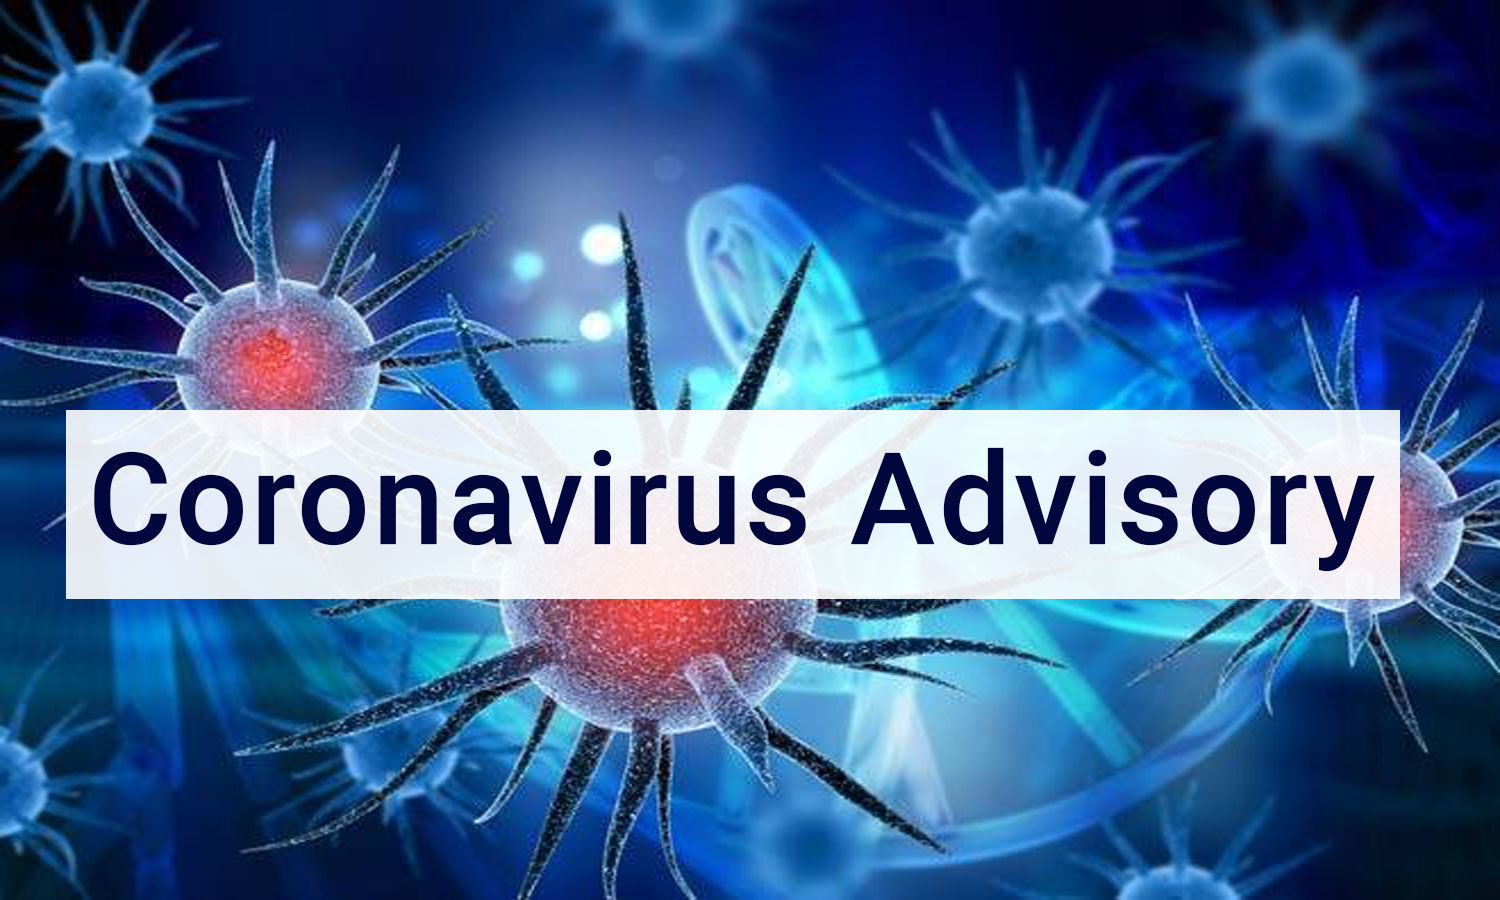 Management of Patients with COVID-19 Infection, IDSA  guidelines released